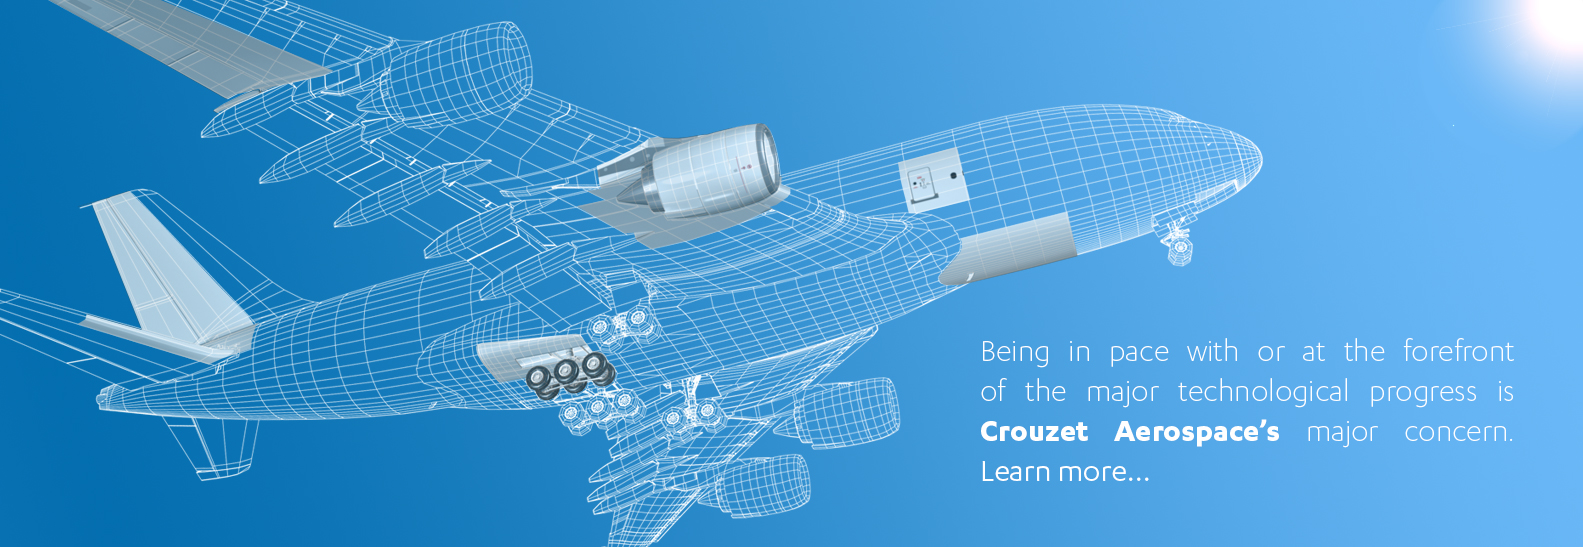 Crouzet Aerospace Technology Days